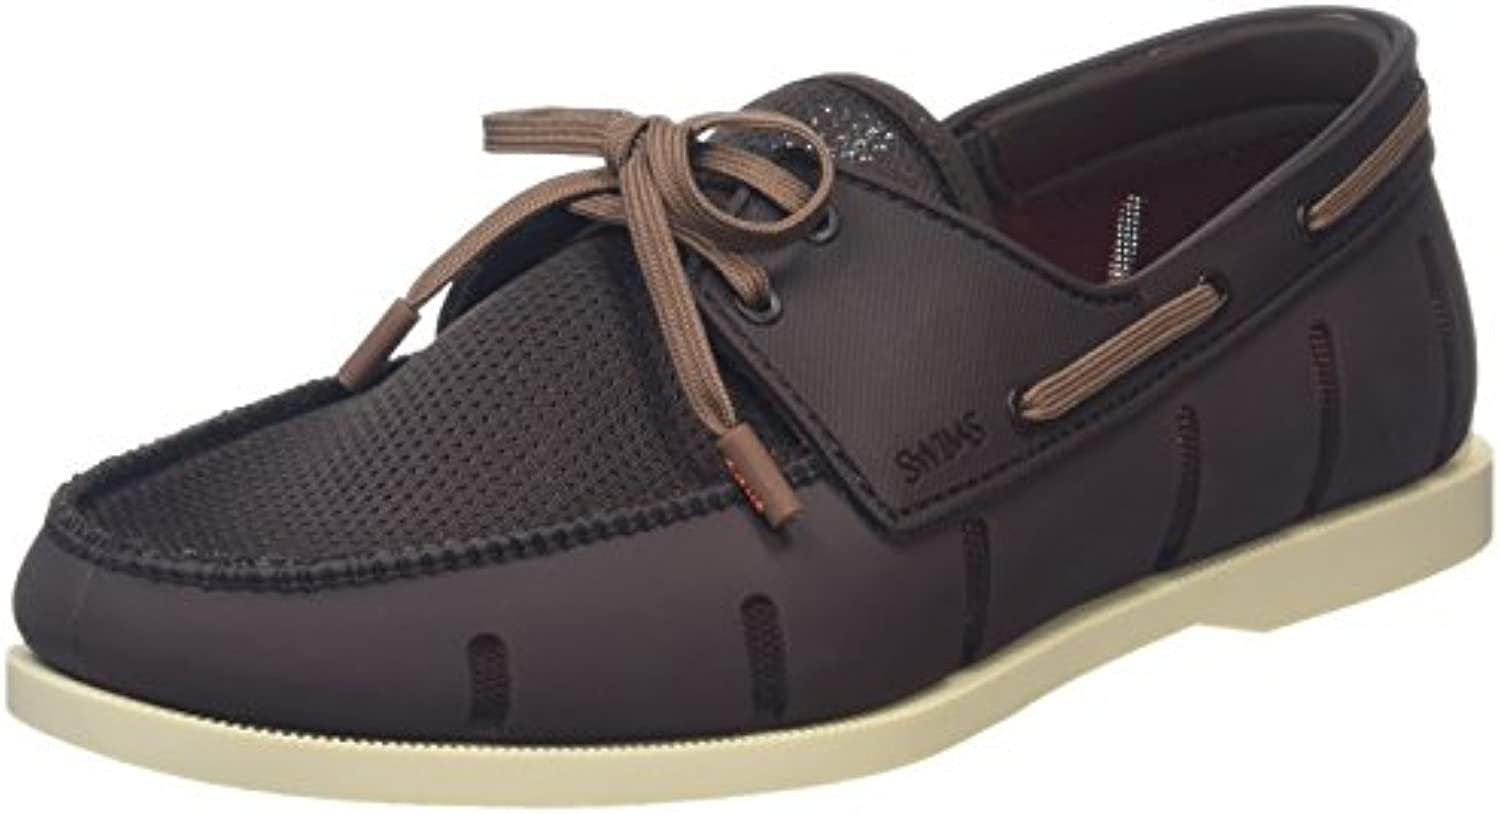 Swims Herren Boat Loafer Slipper